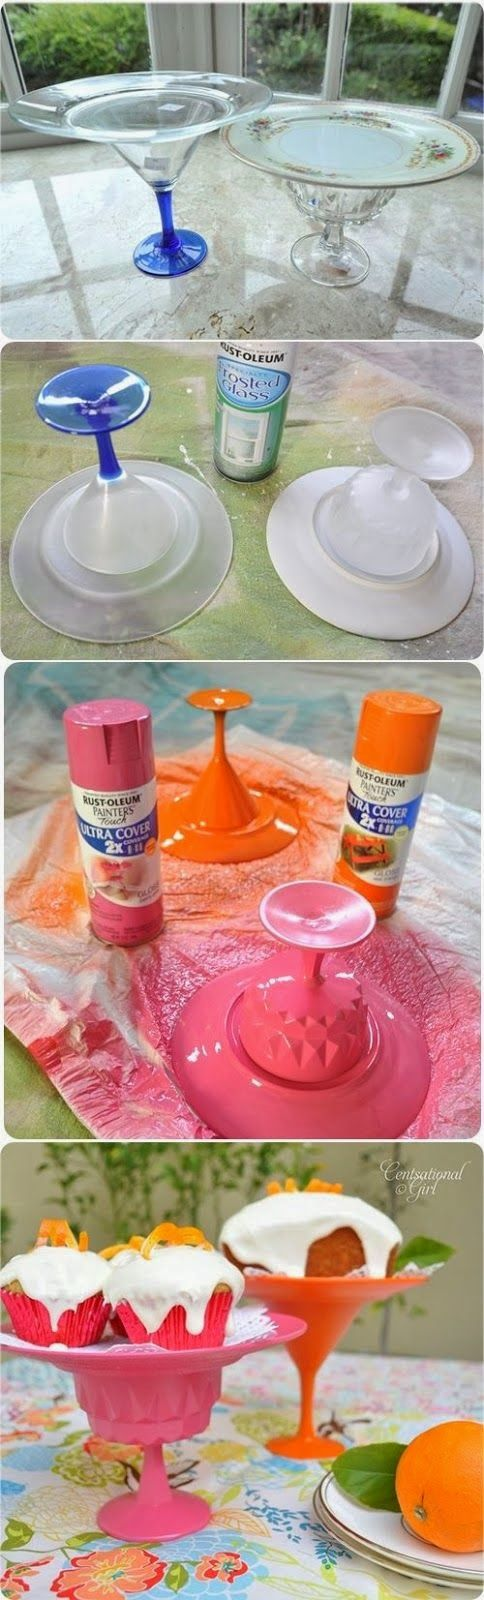 Dollar store plates and cups turned into a cupcake stand